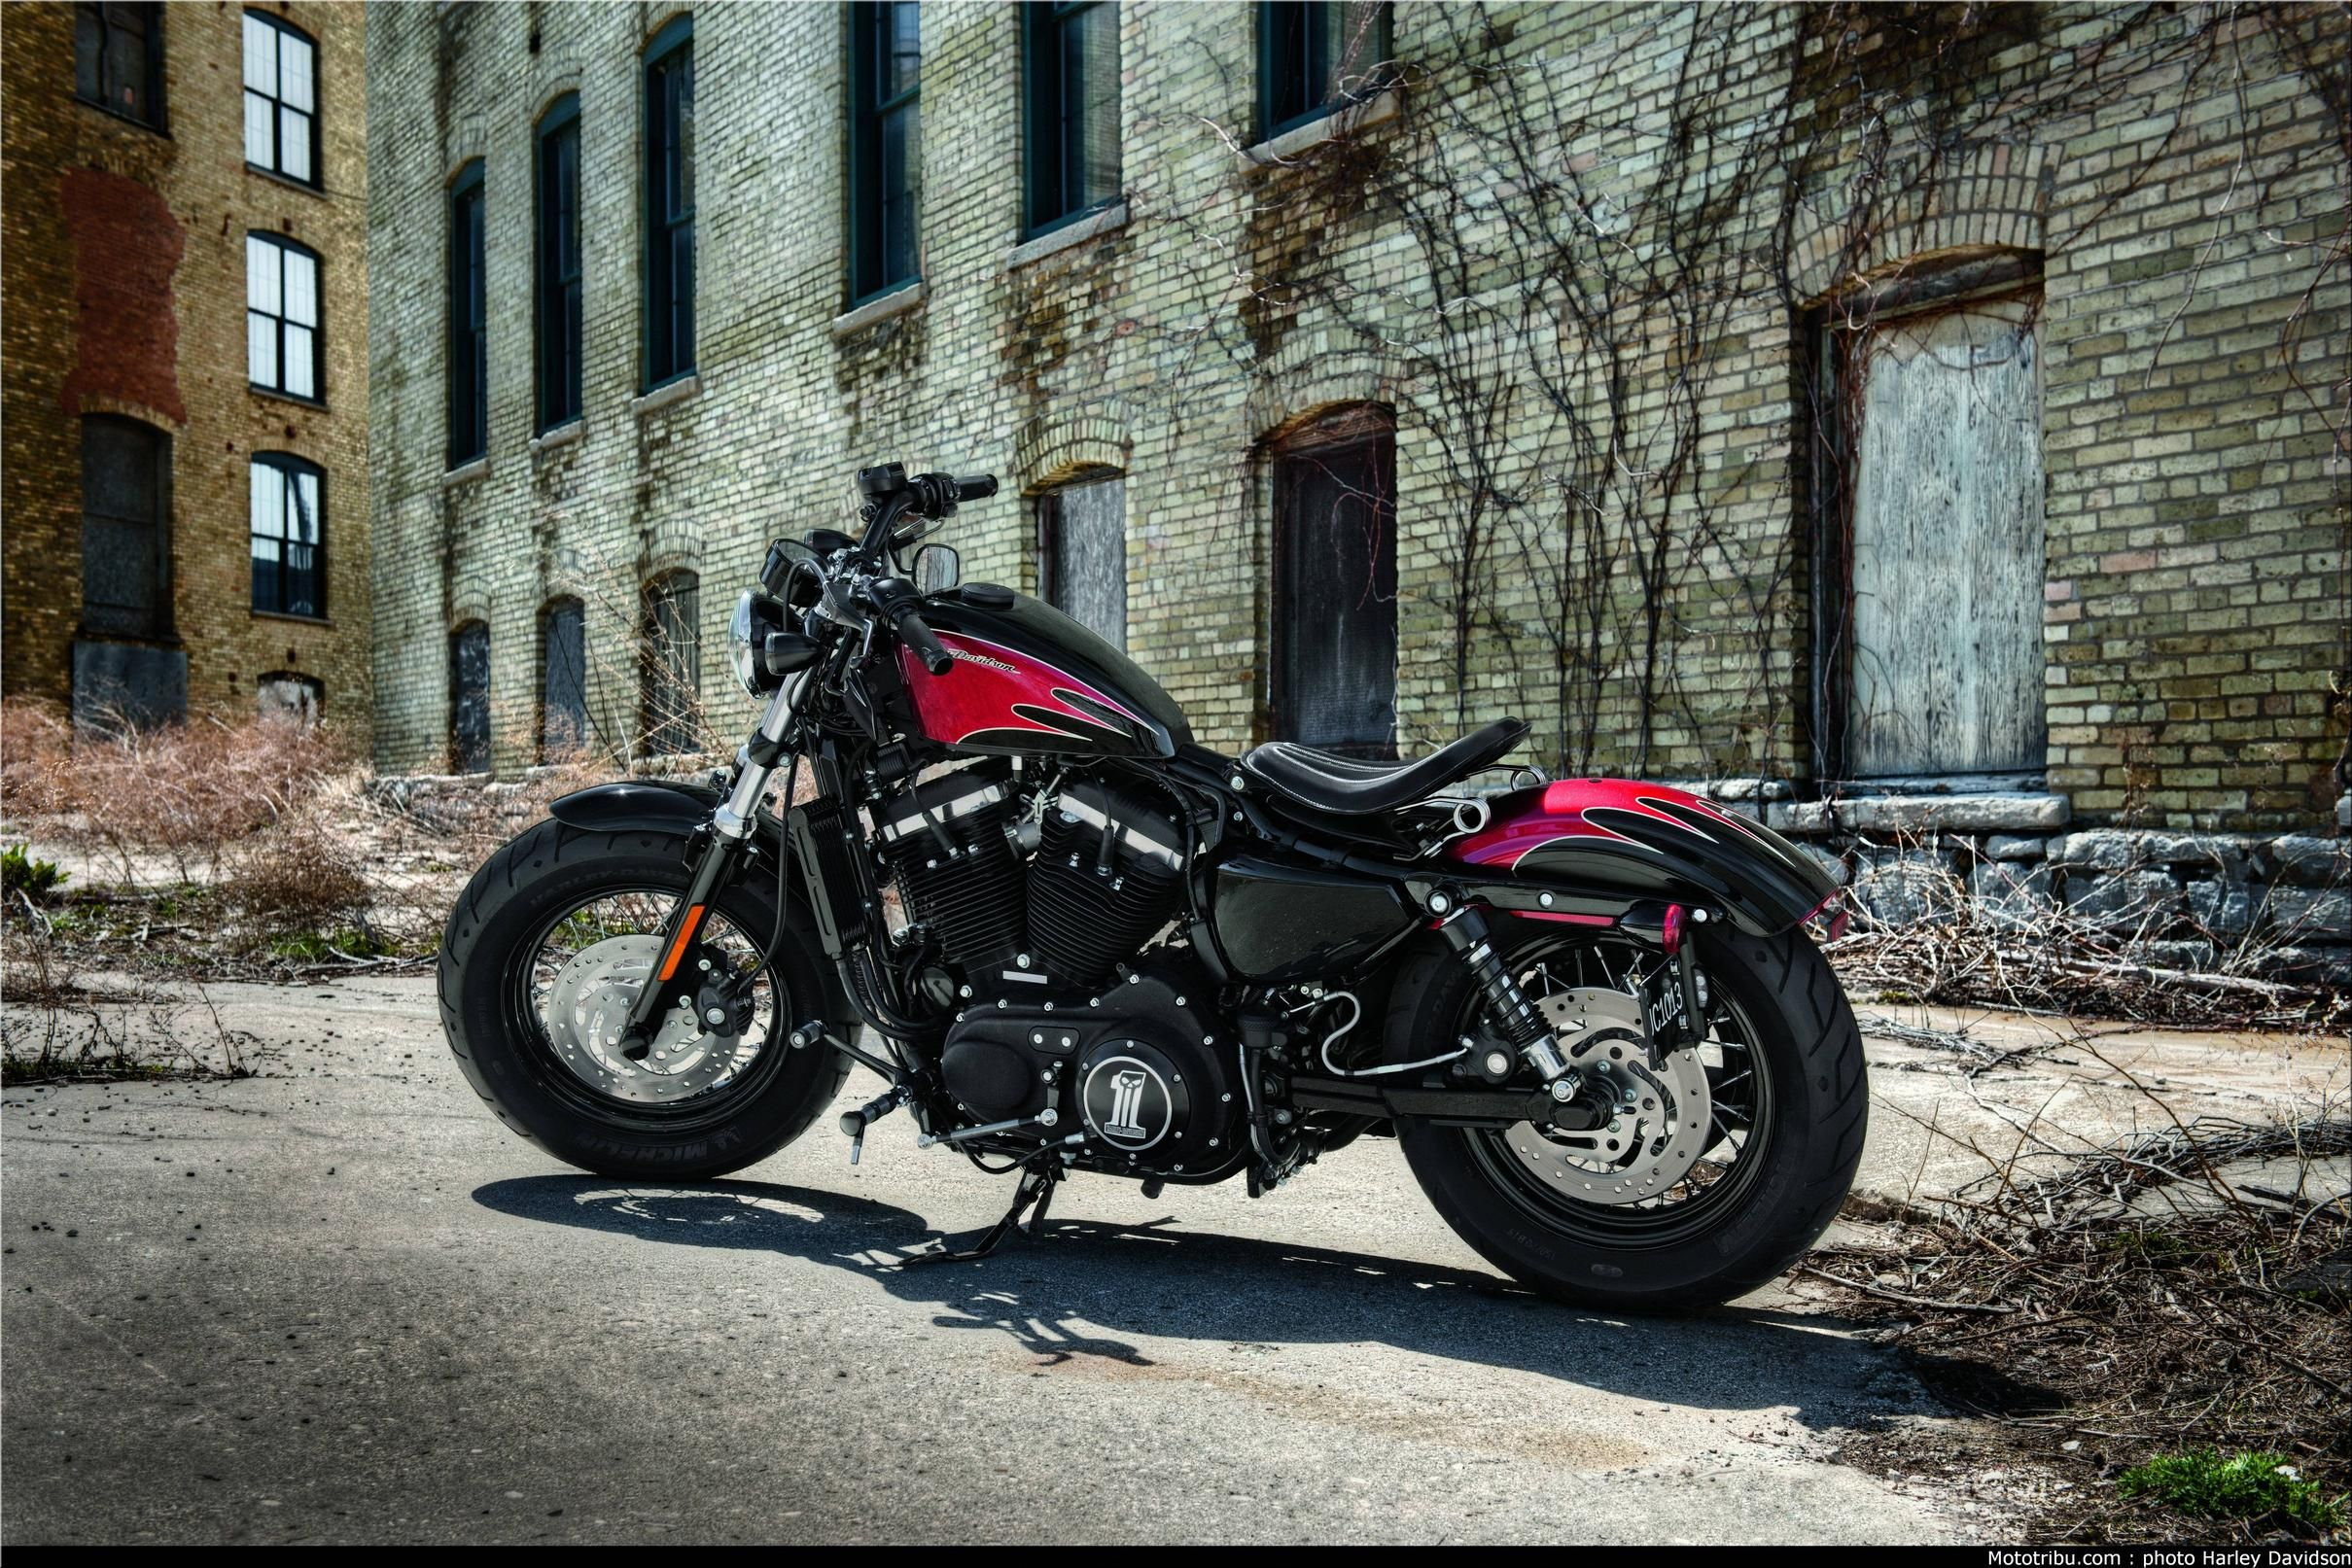 Harley Davidson Bikes Images, Photos, Pictures Page-8 | Harley ...